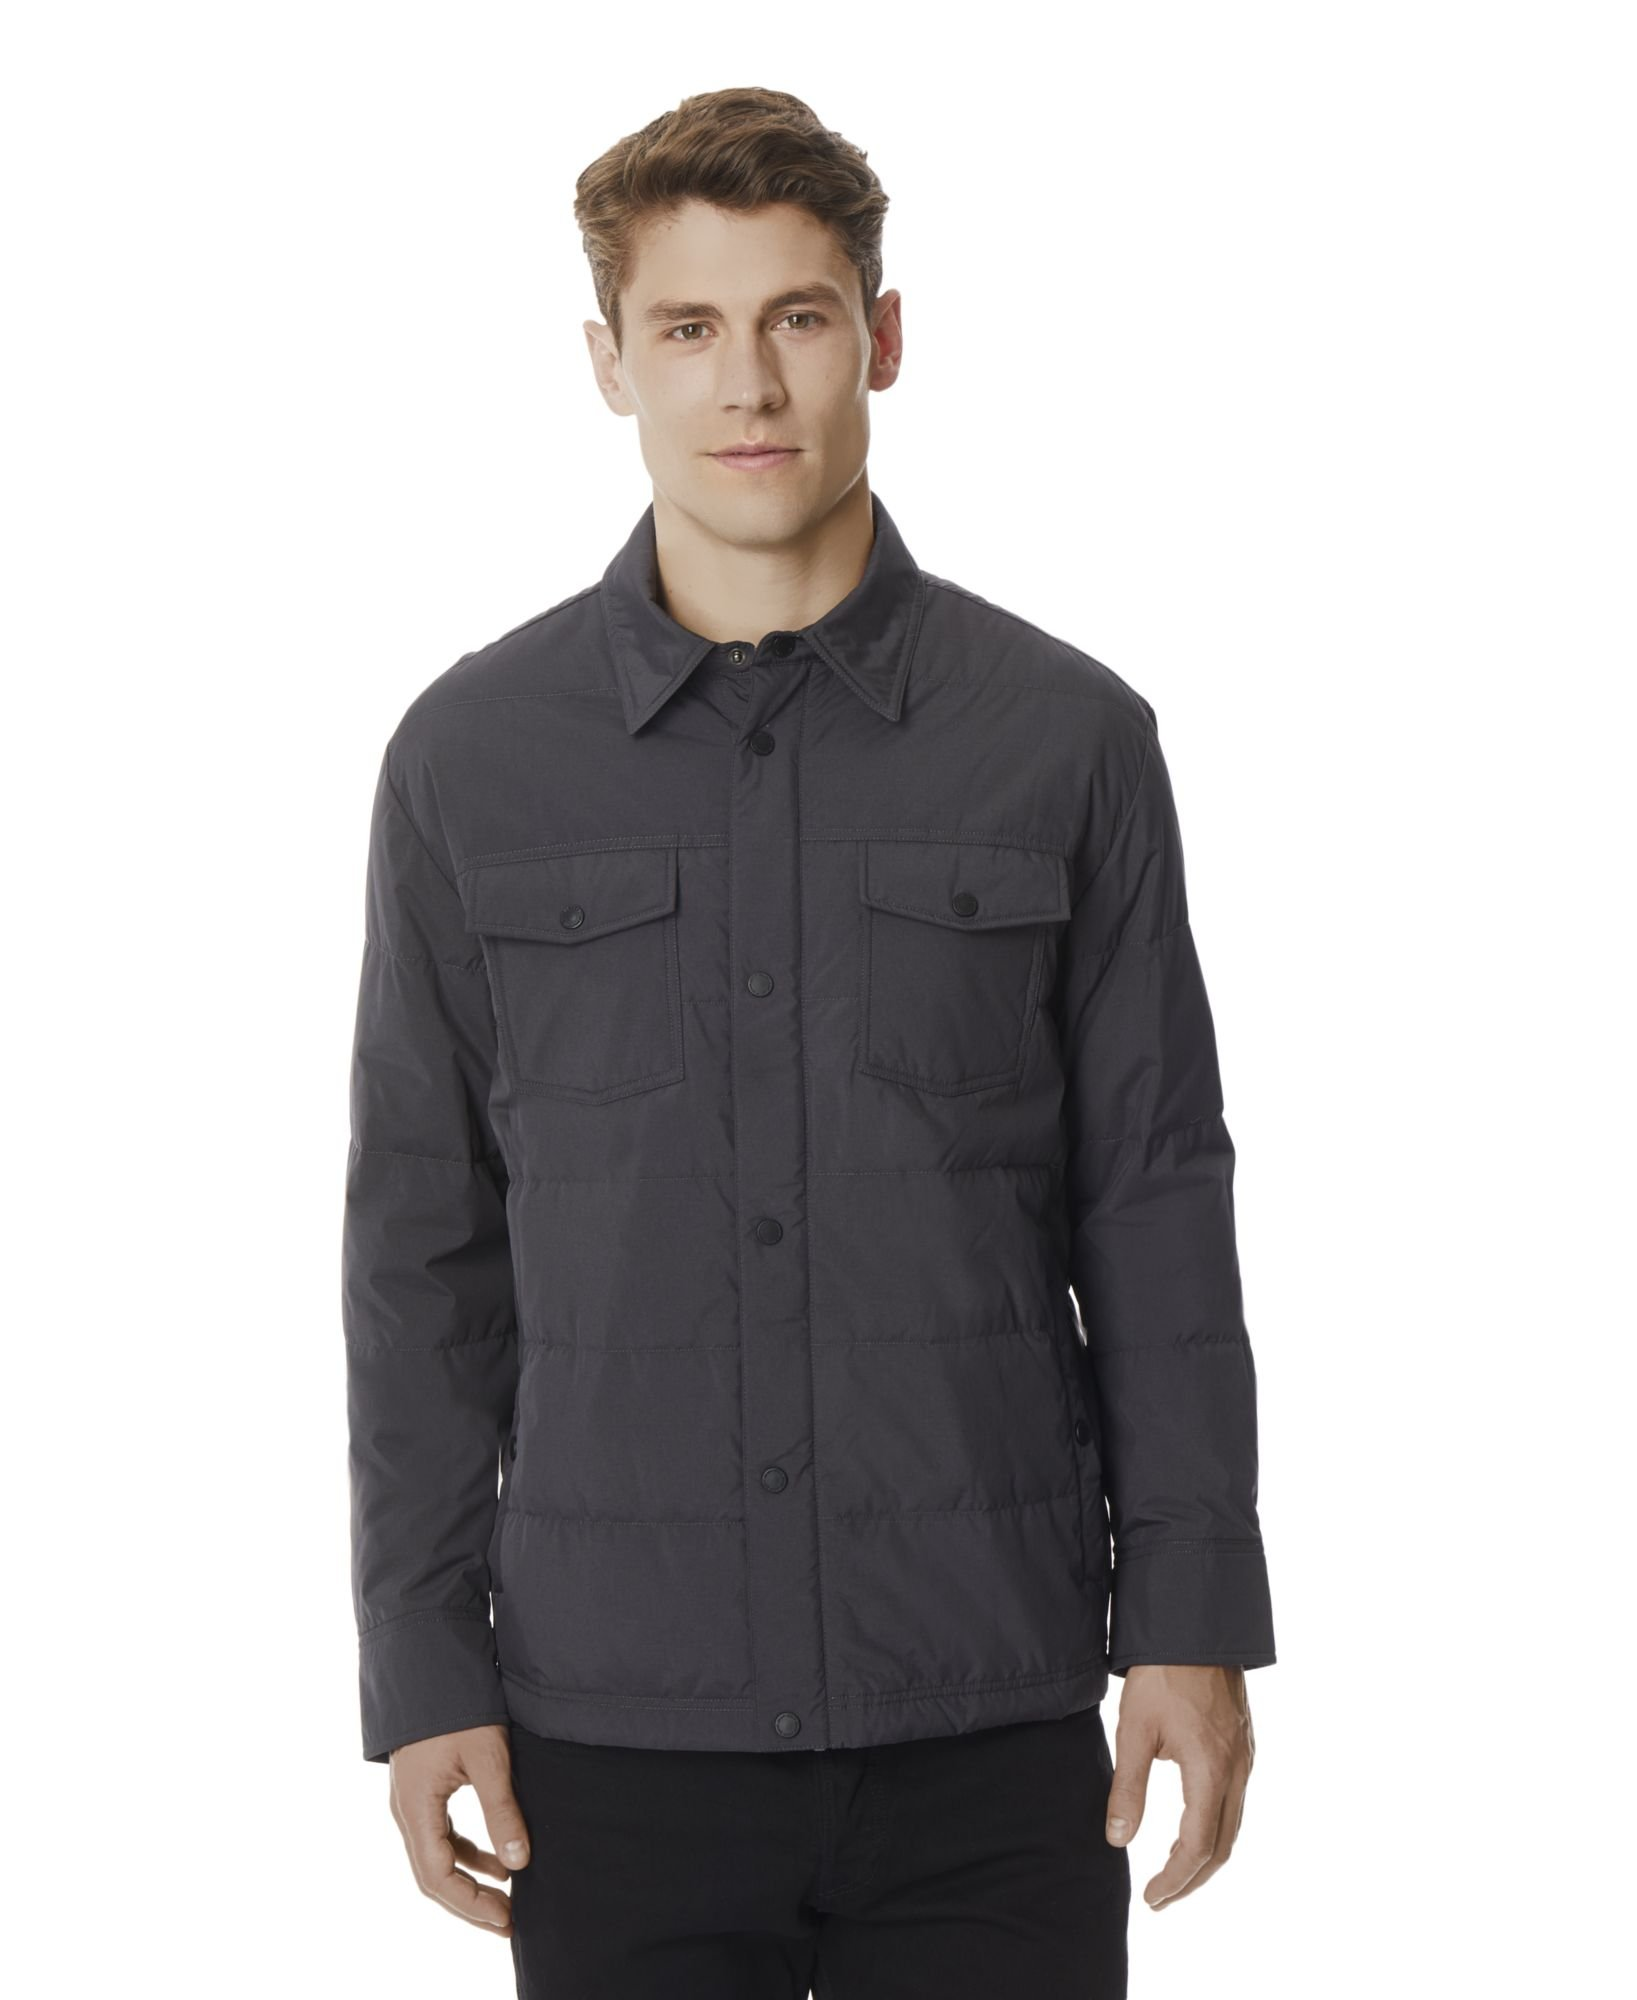 32 DEGREES Men's Packable Down Shirt Jacket -Iron-XL by 32 DEGREES